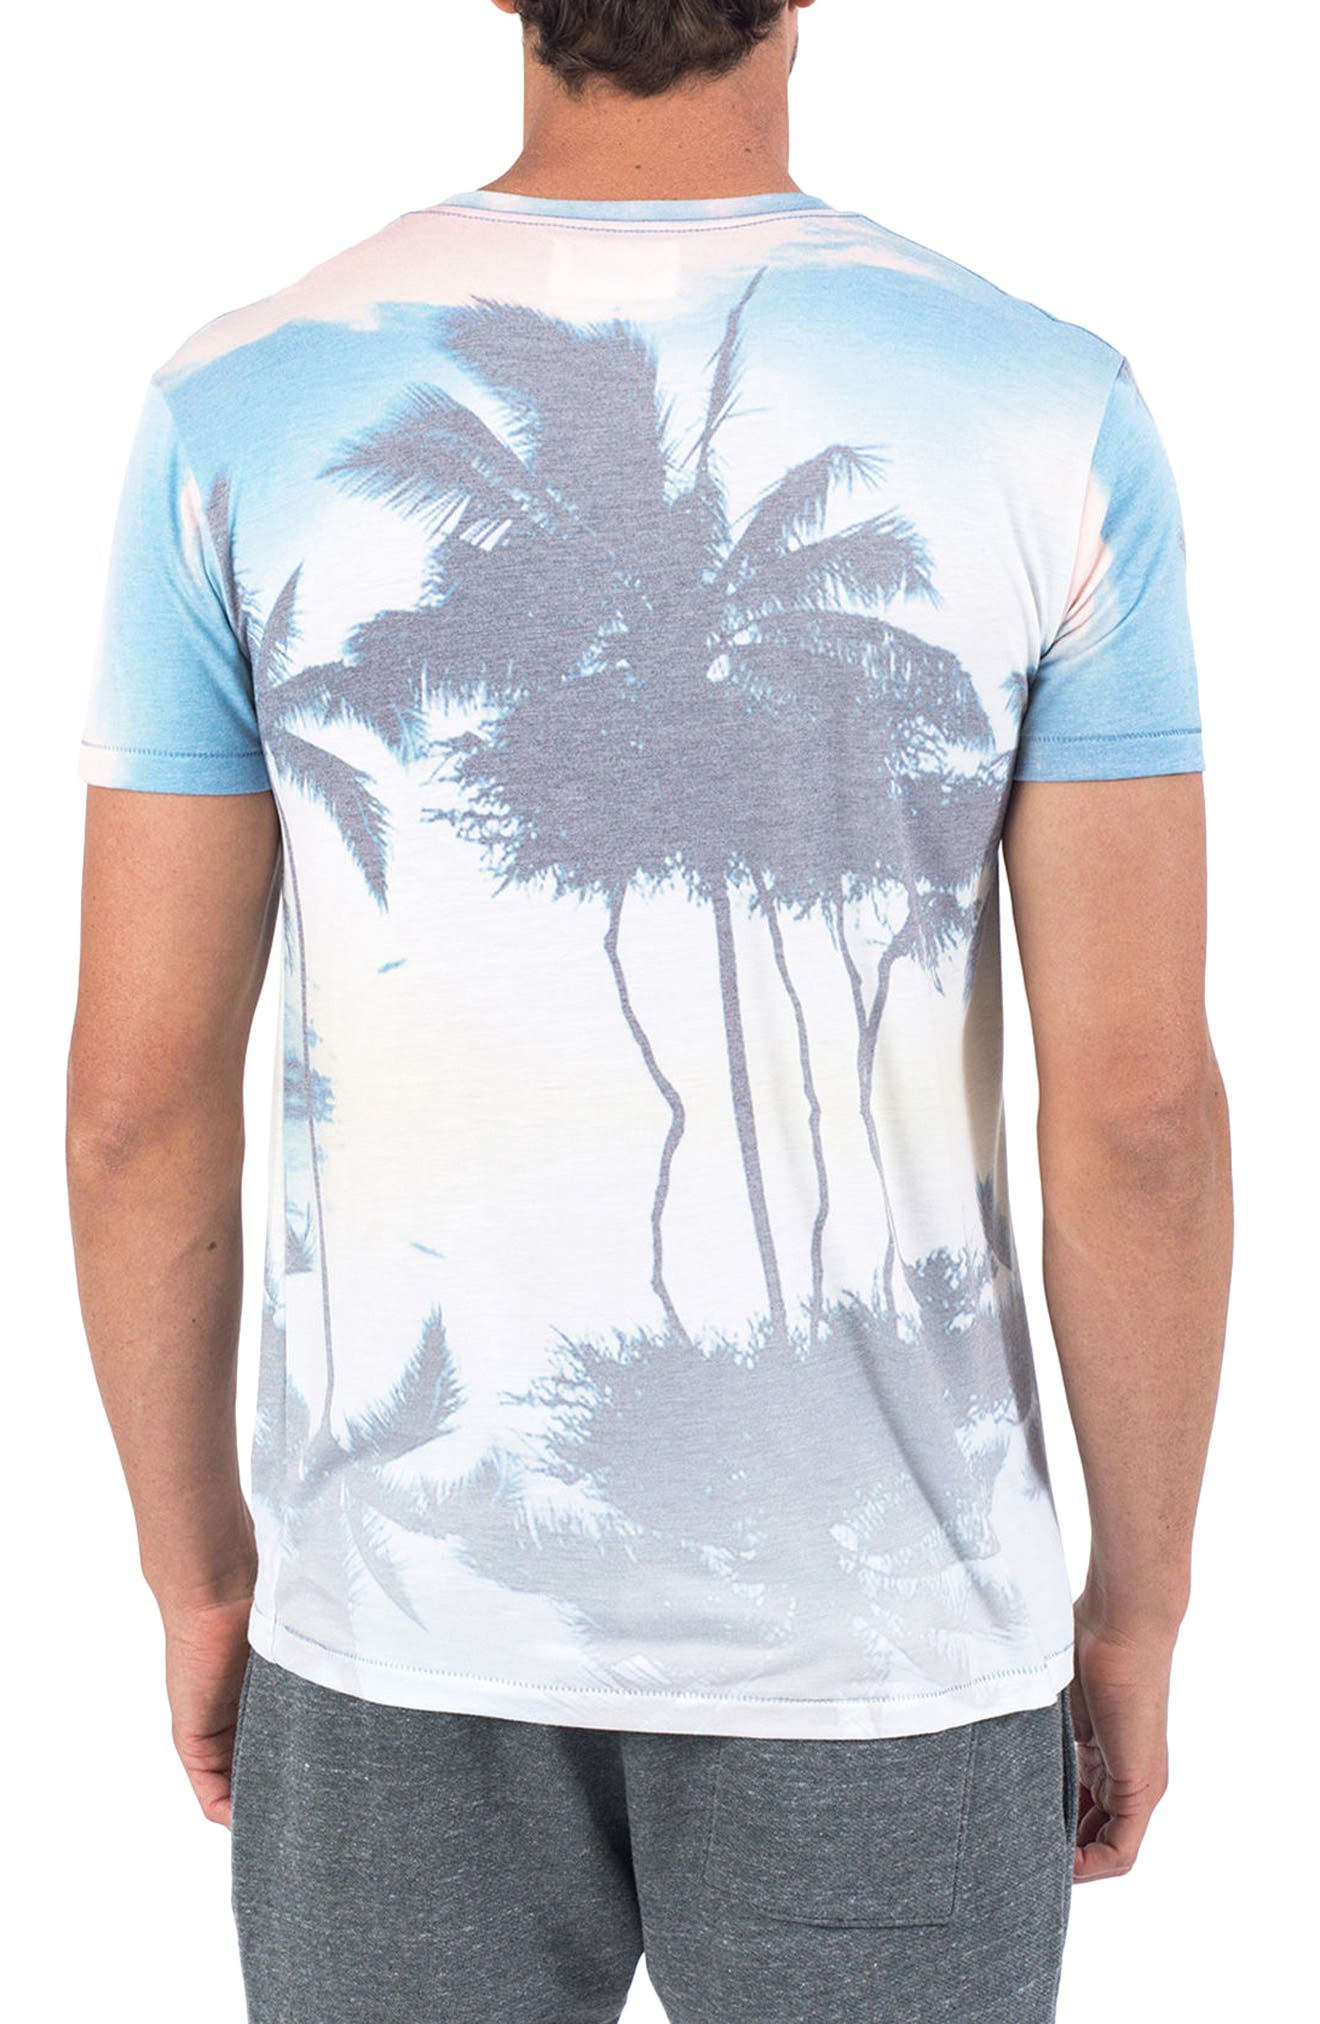 Off Tropic T-Shirt,                             Alternate thumbnail 2, color,                             Off Tropic